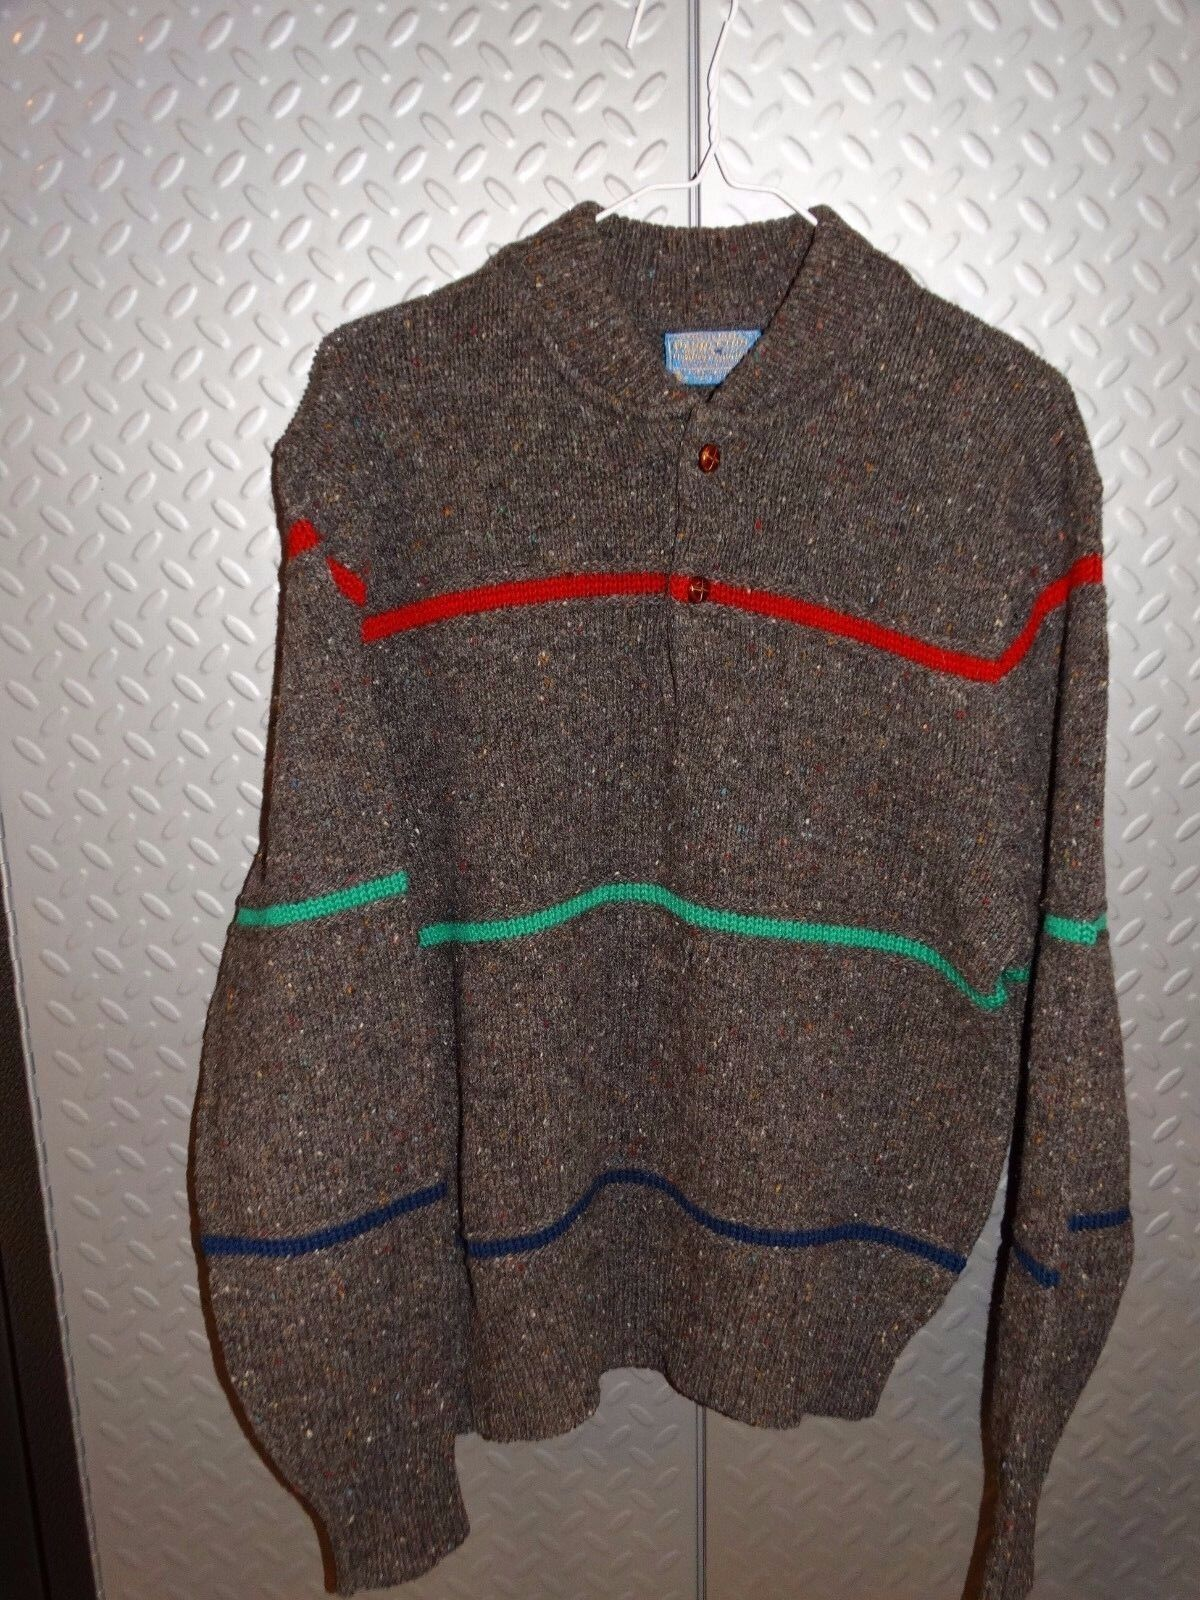 17213  Pendleton Vintage Wool Nordic Print Sweater Made In USA  L Large